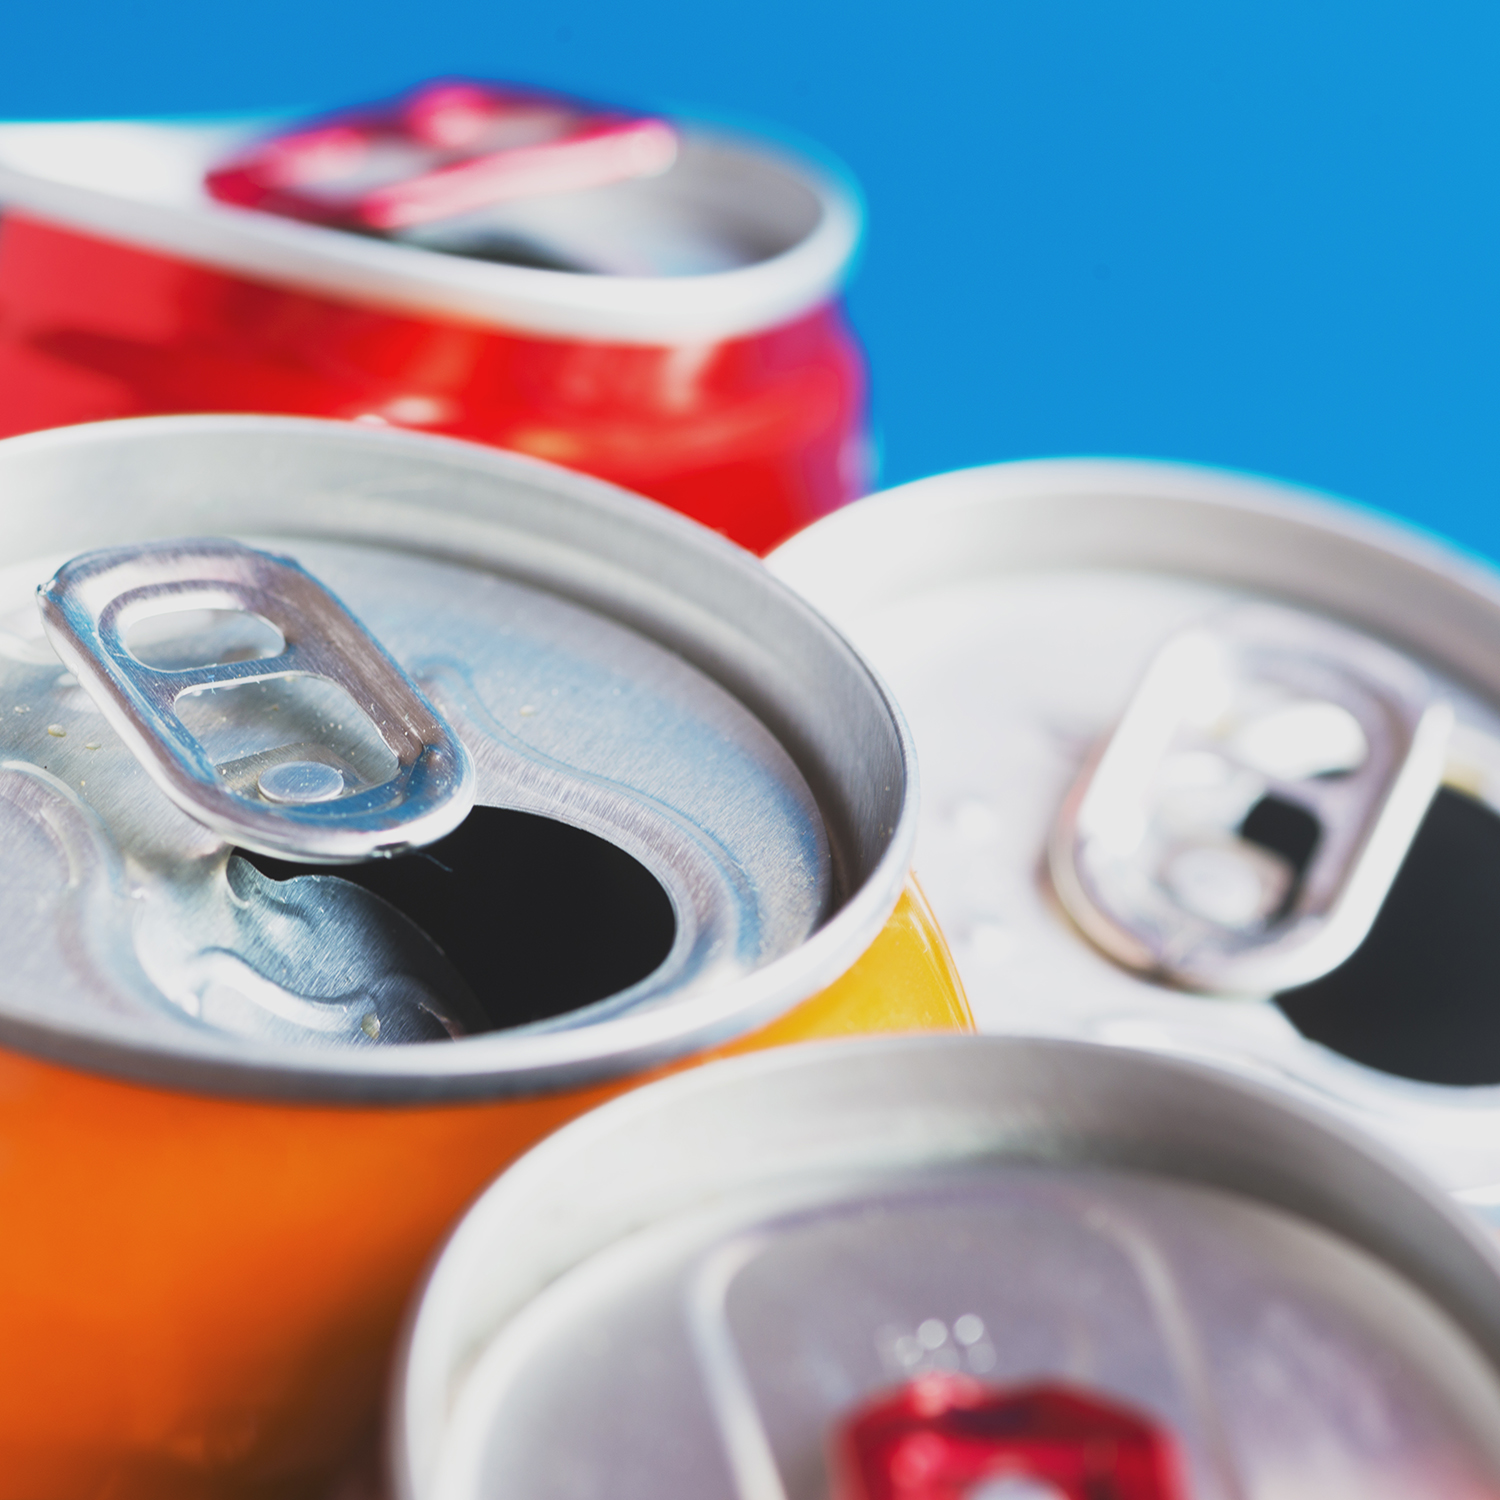 energy drink cans_ThinkstockPhotos